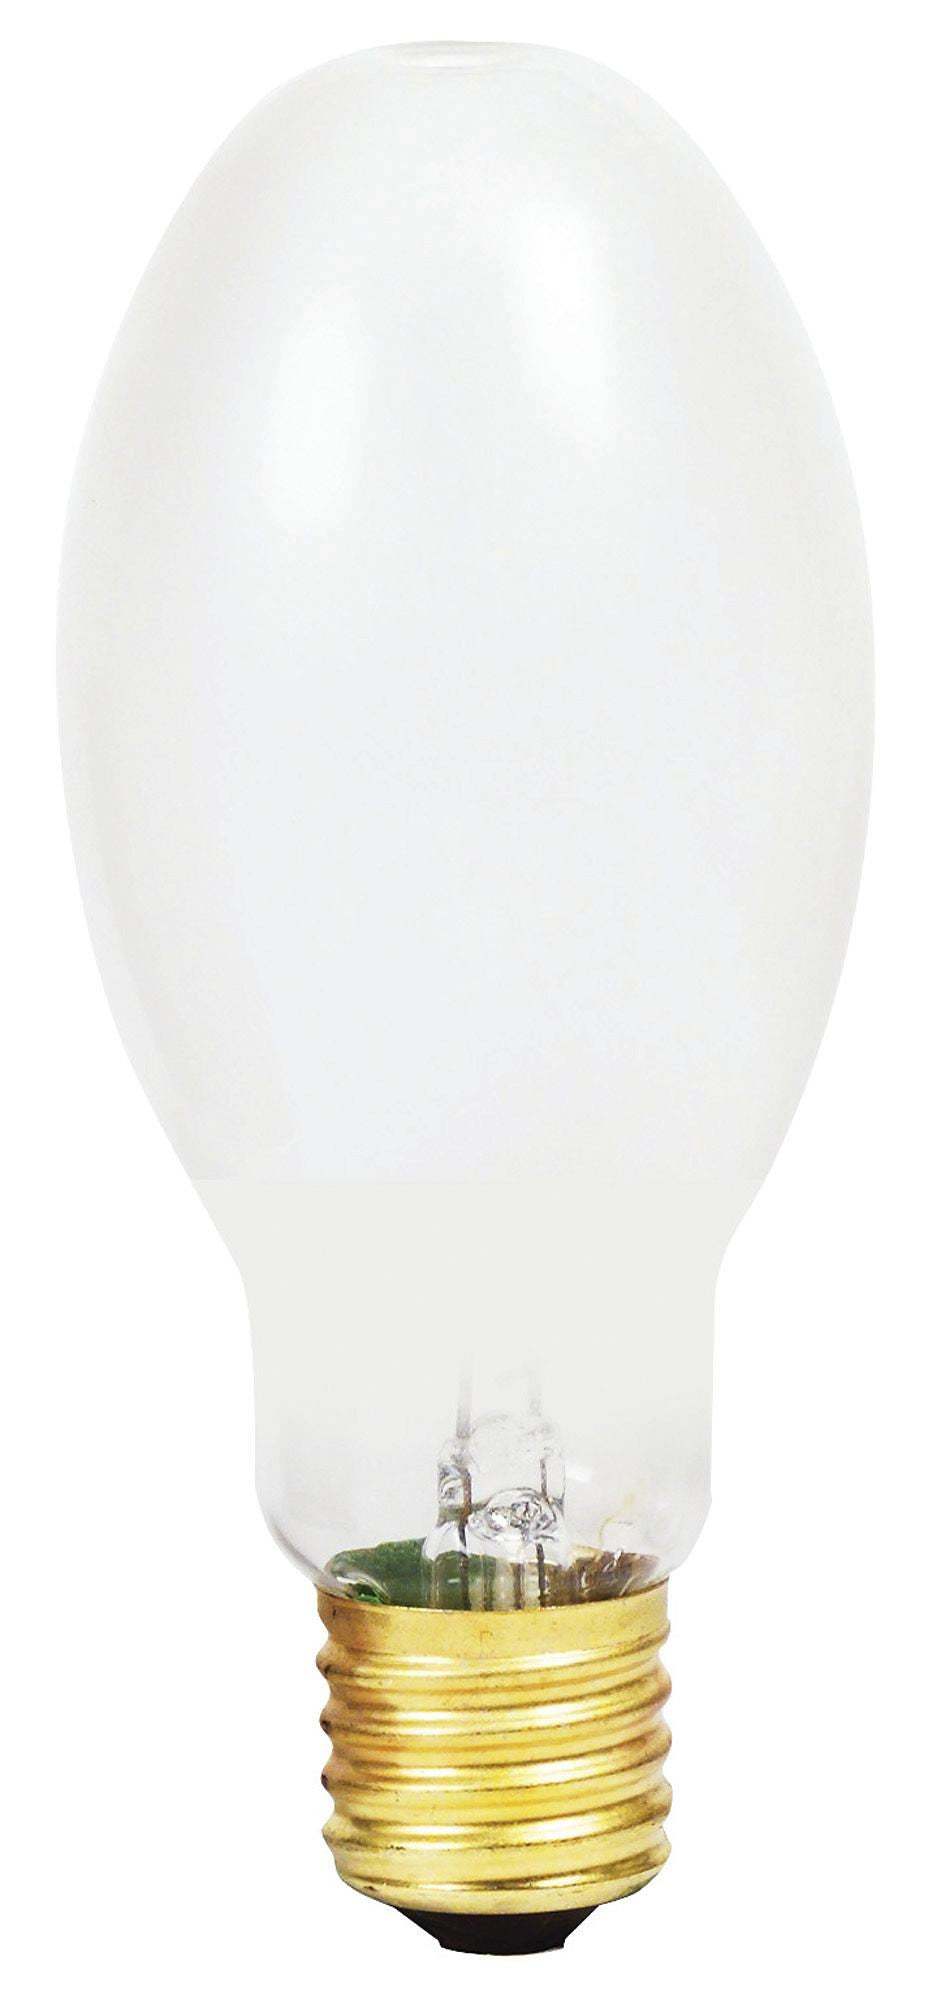 Philips 150w BD17 E26 2100k Ceramalux HID Light Bulb